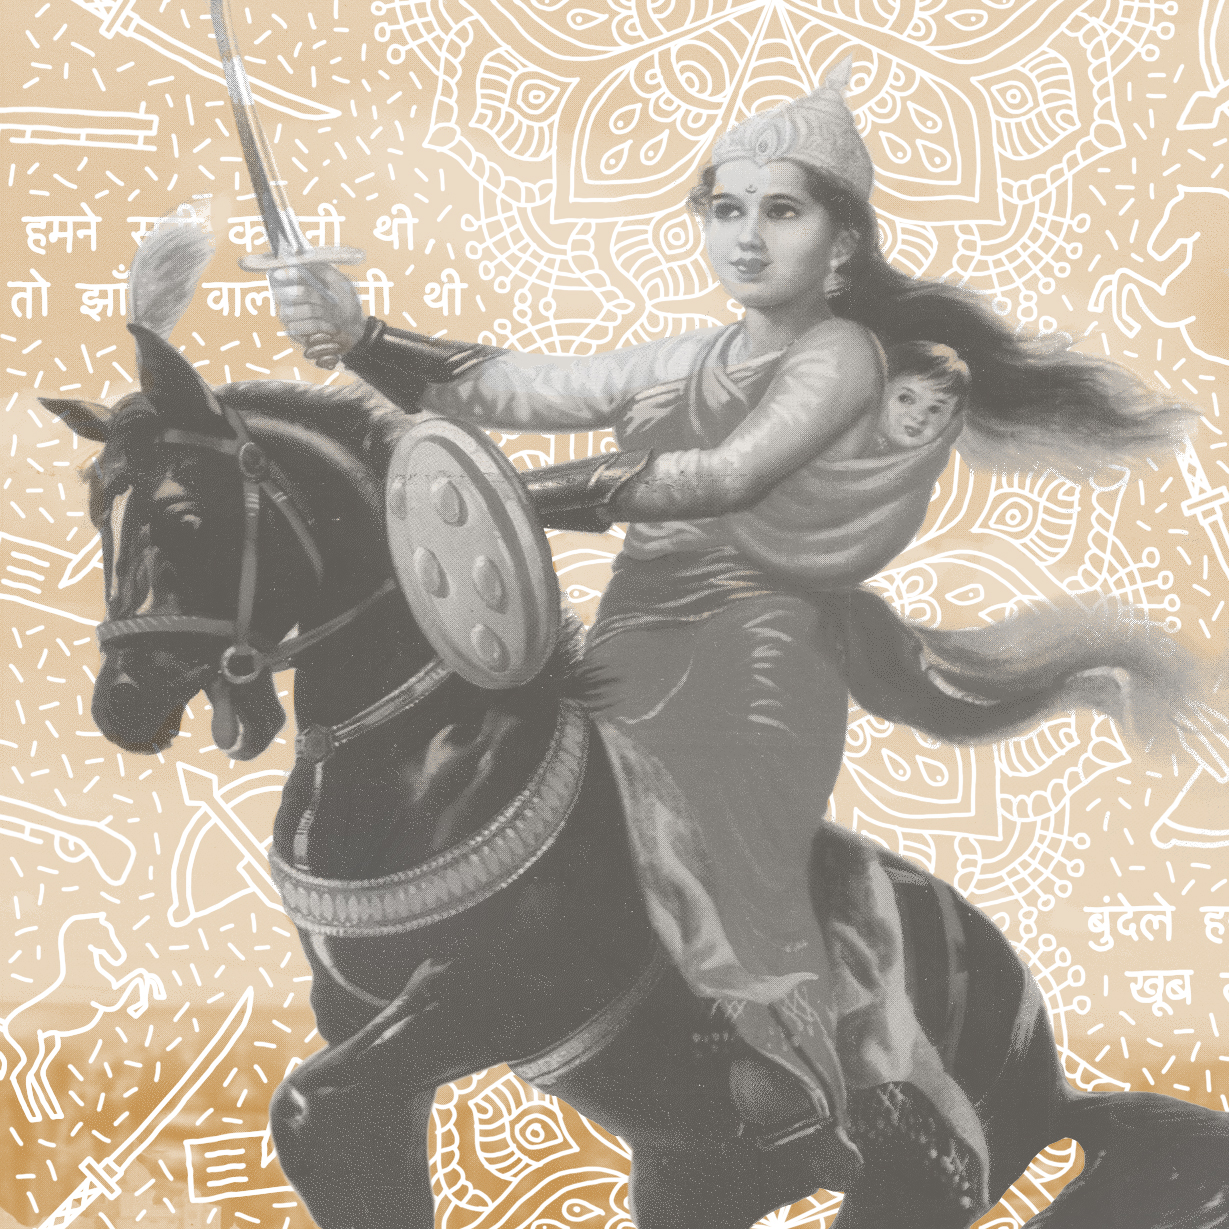 Rani Lakshmibai   Rani Lakshmibai was the Queen of Jhansi, north-central India, and a central figure in the struggle against British rule. Growing up, she learned how to do badass shit like ride elephants, jump over fire-pits on horseback, sword fight, shoot a crossbow, load a musket, read, and write. Raini managed to assemble an ultra-loyal personal bodyguard of mega-tough women courtiers who knew how to fight. Sometimes described as the Indian Joan of Arc, she fought in the Indian Rebellion of 1857.